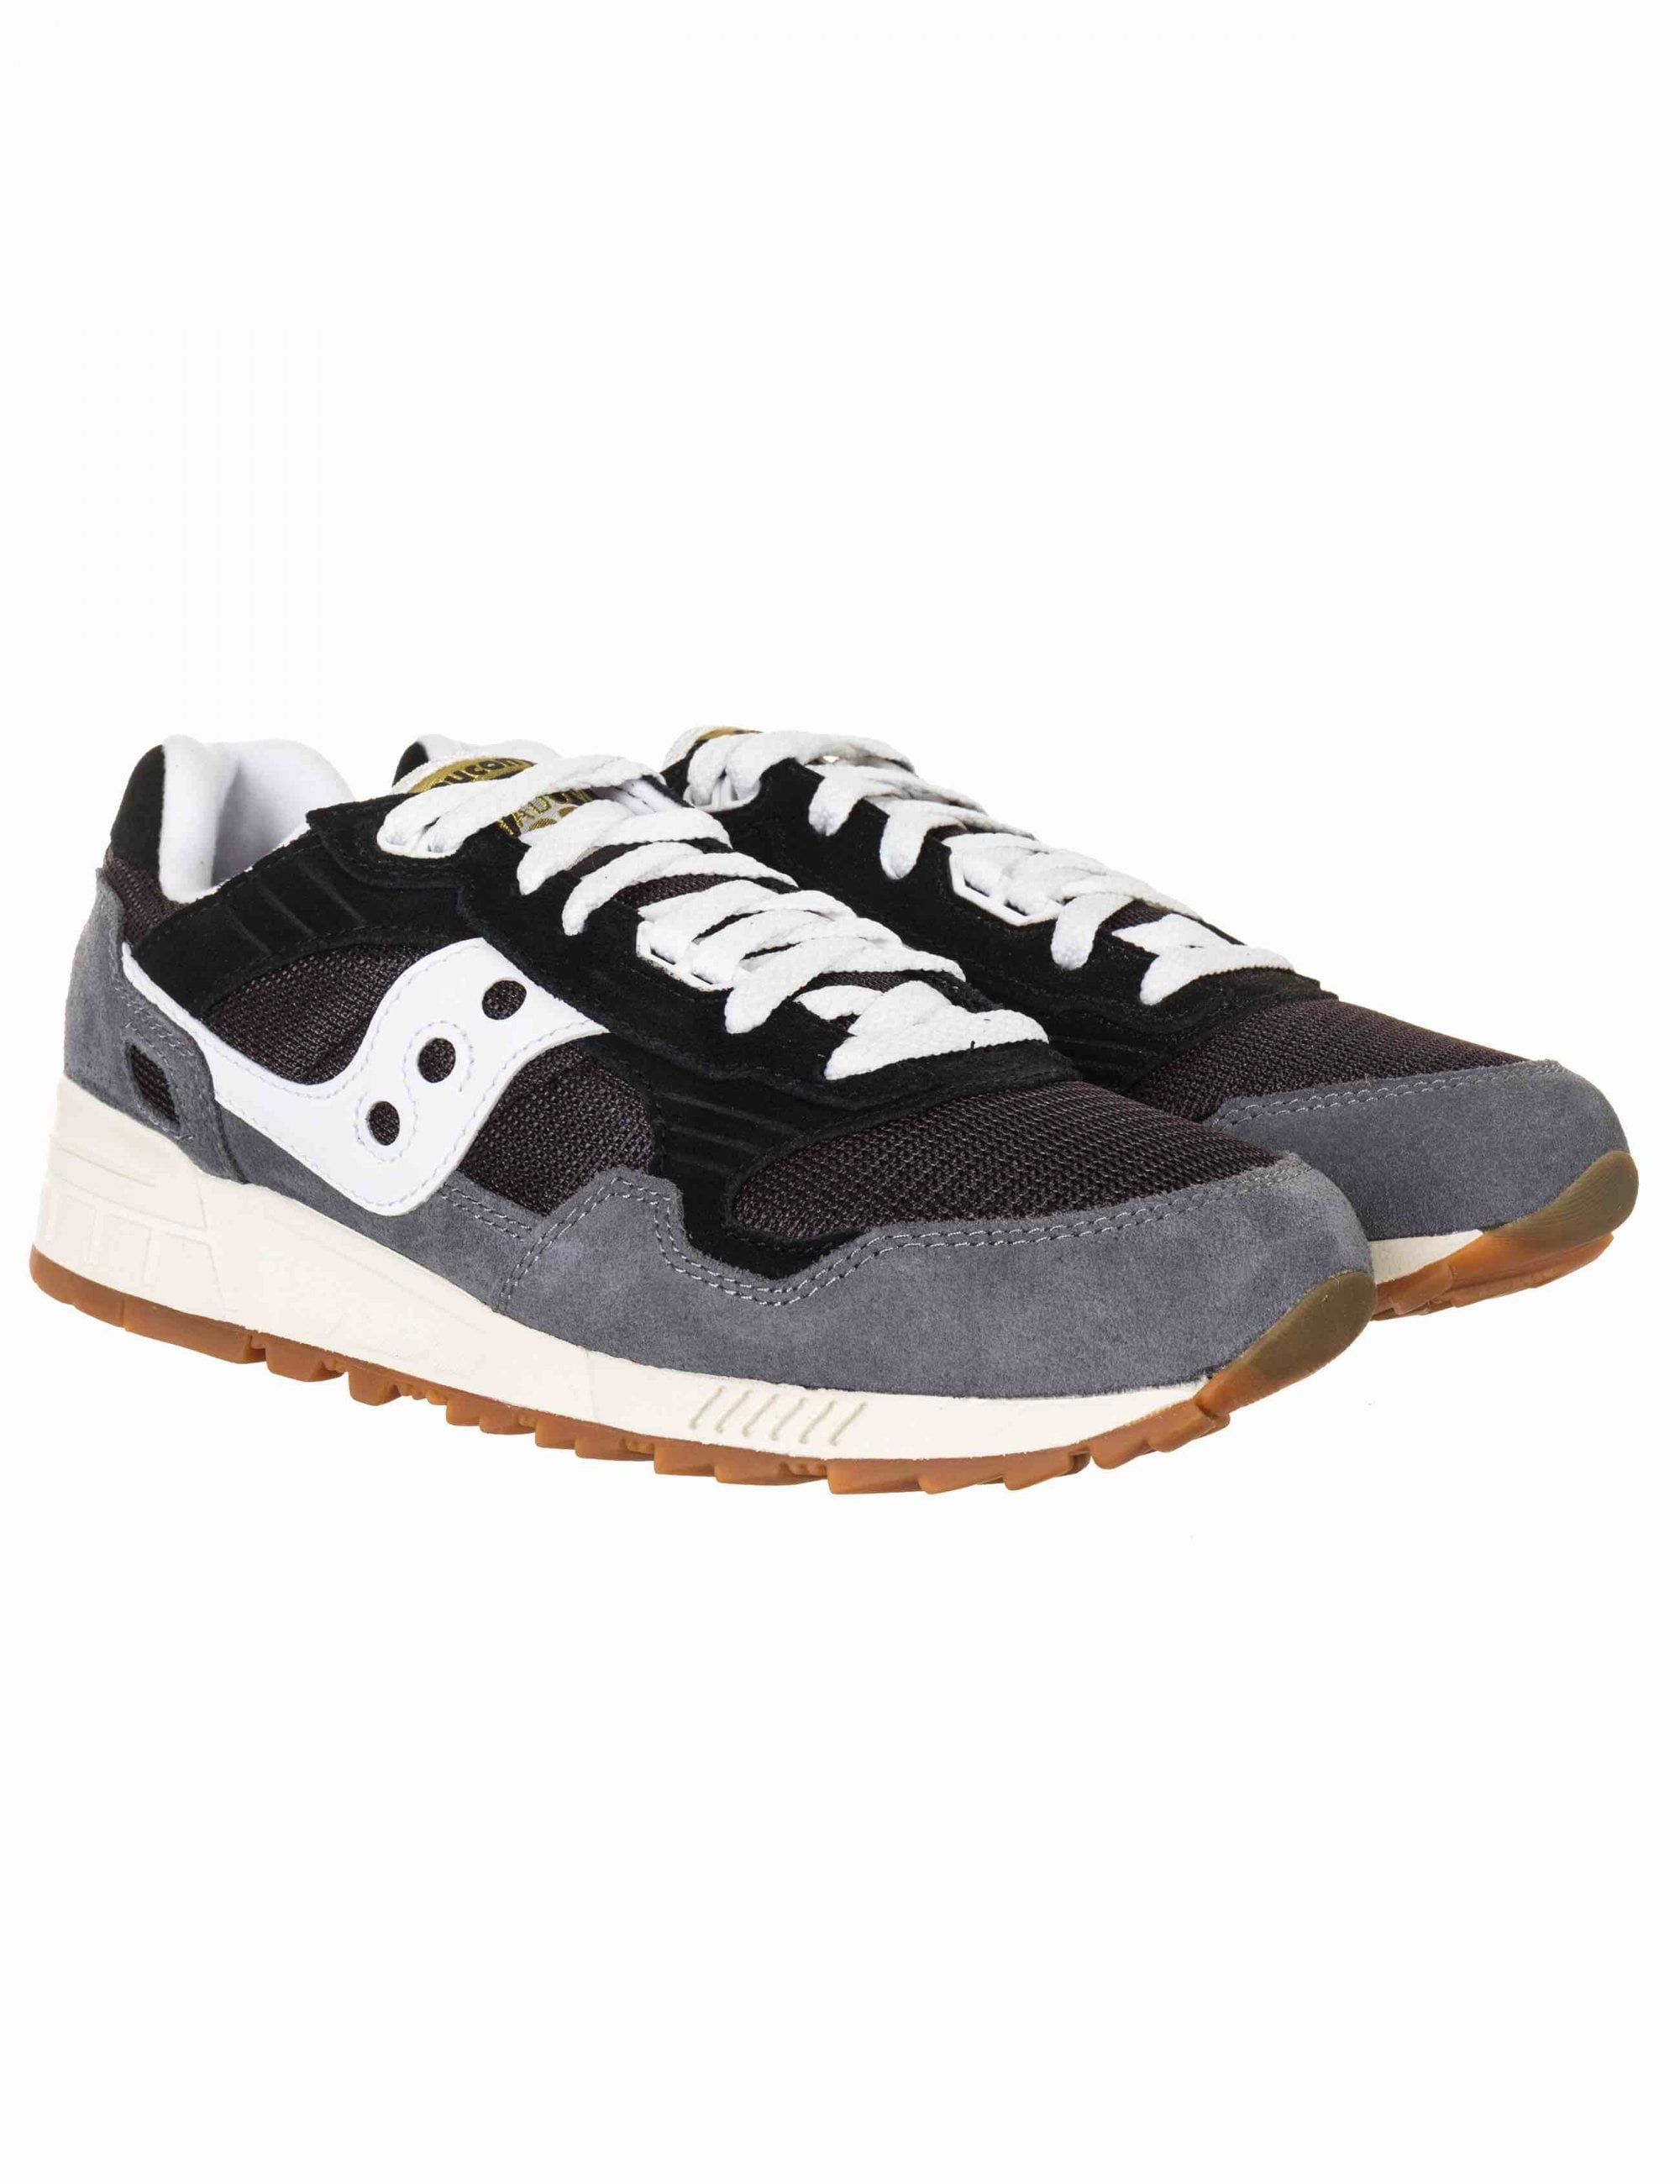 Università Midollo osseo Banca  Saucony Shadow 5000 Vintage Trainers - Navy/Grey - Footwear from Fat Buddha  Store UK